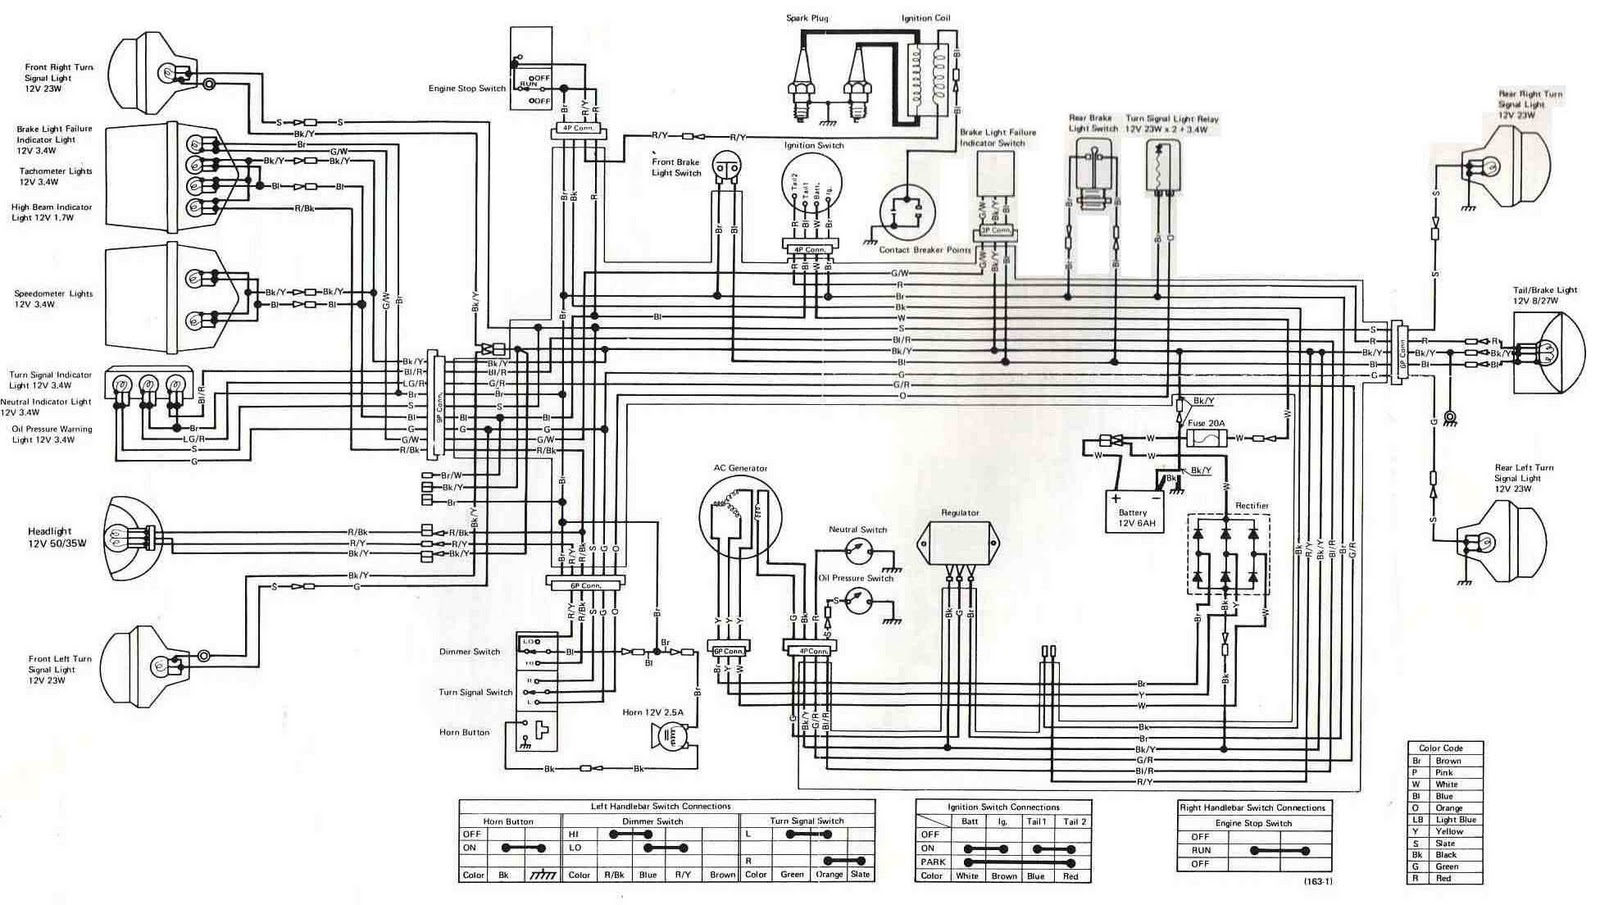 Kawasaki+KZ400+1975+Electrical+Wiring+Diagram kawasaki wiring diagram free toyota wiring diagrams \u2022 wiring  at soozxer.org